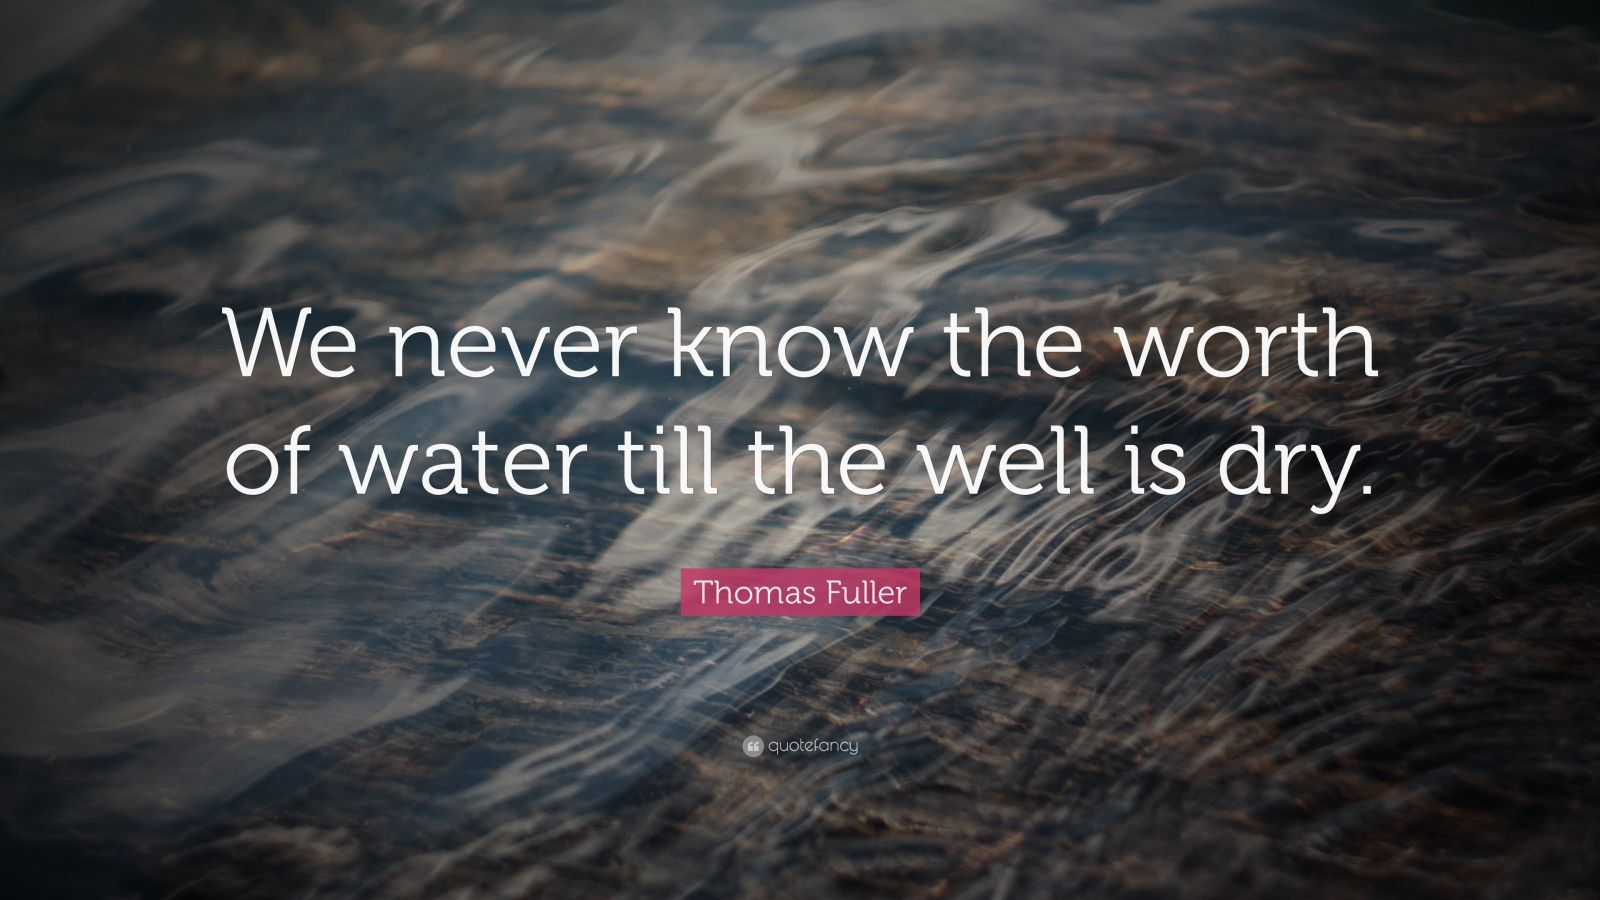 62 Most Beautiful Health Quotes And Sayings |Water Wellness Quotes